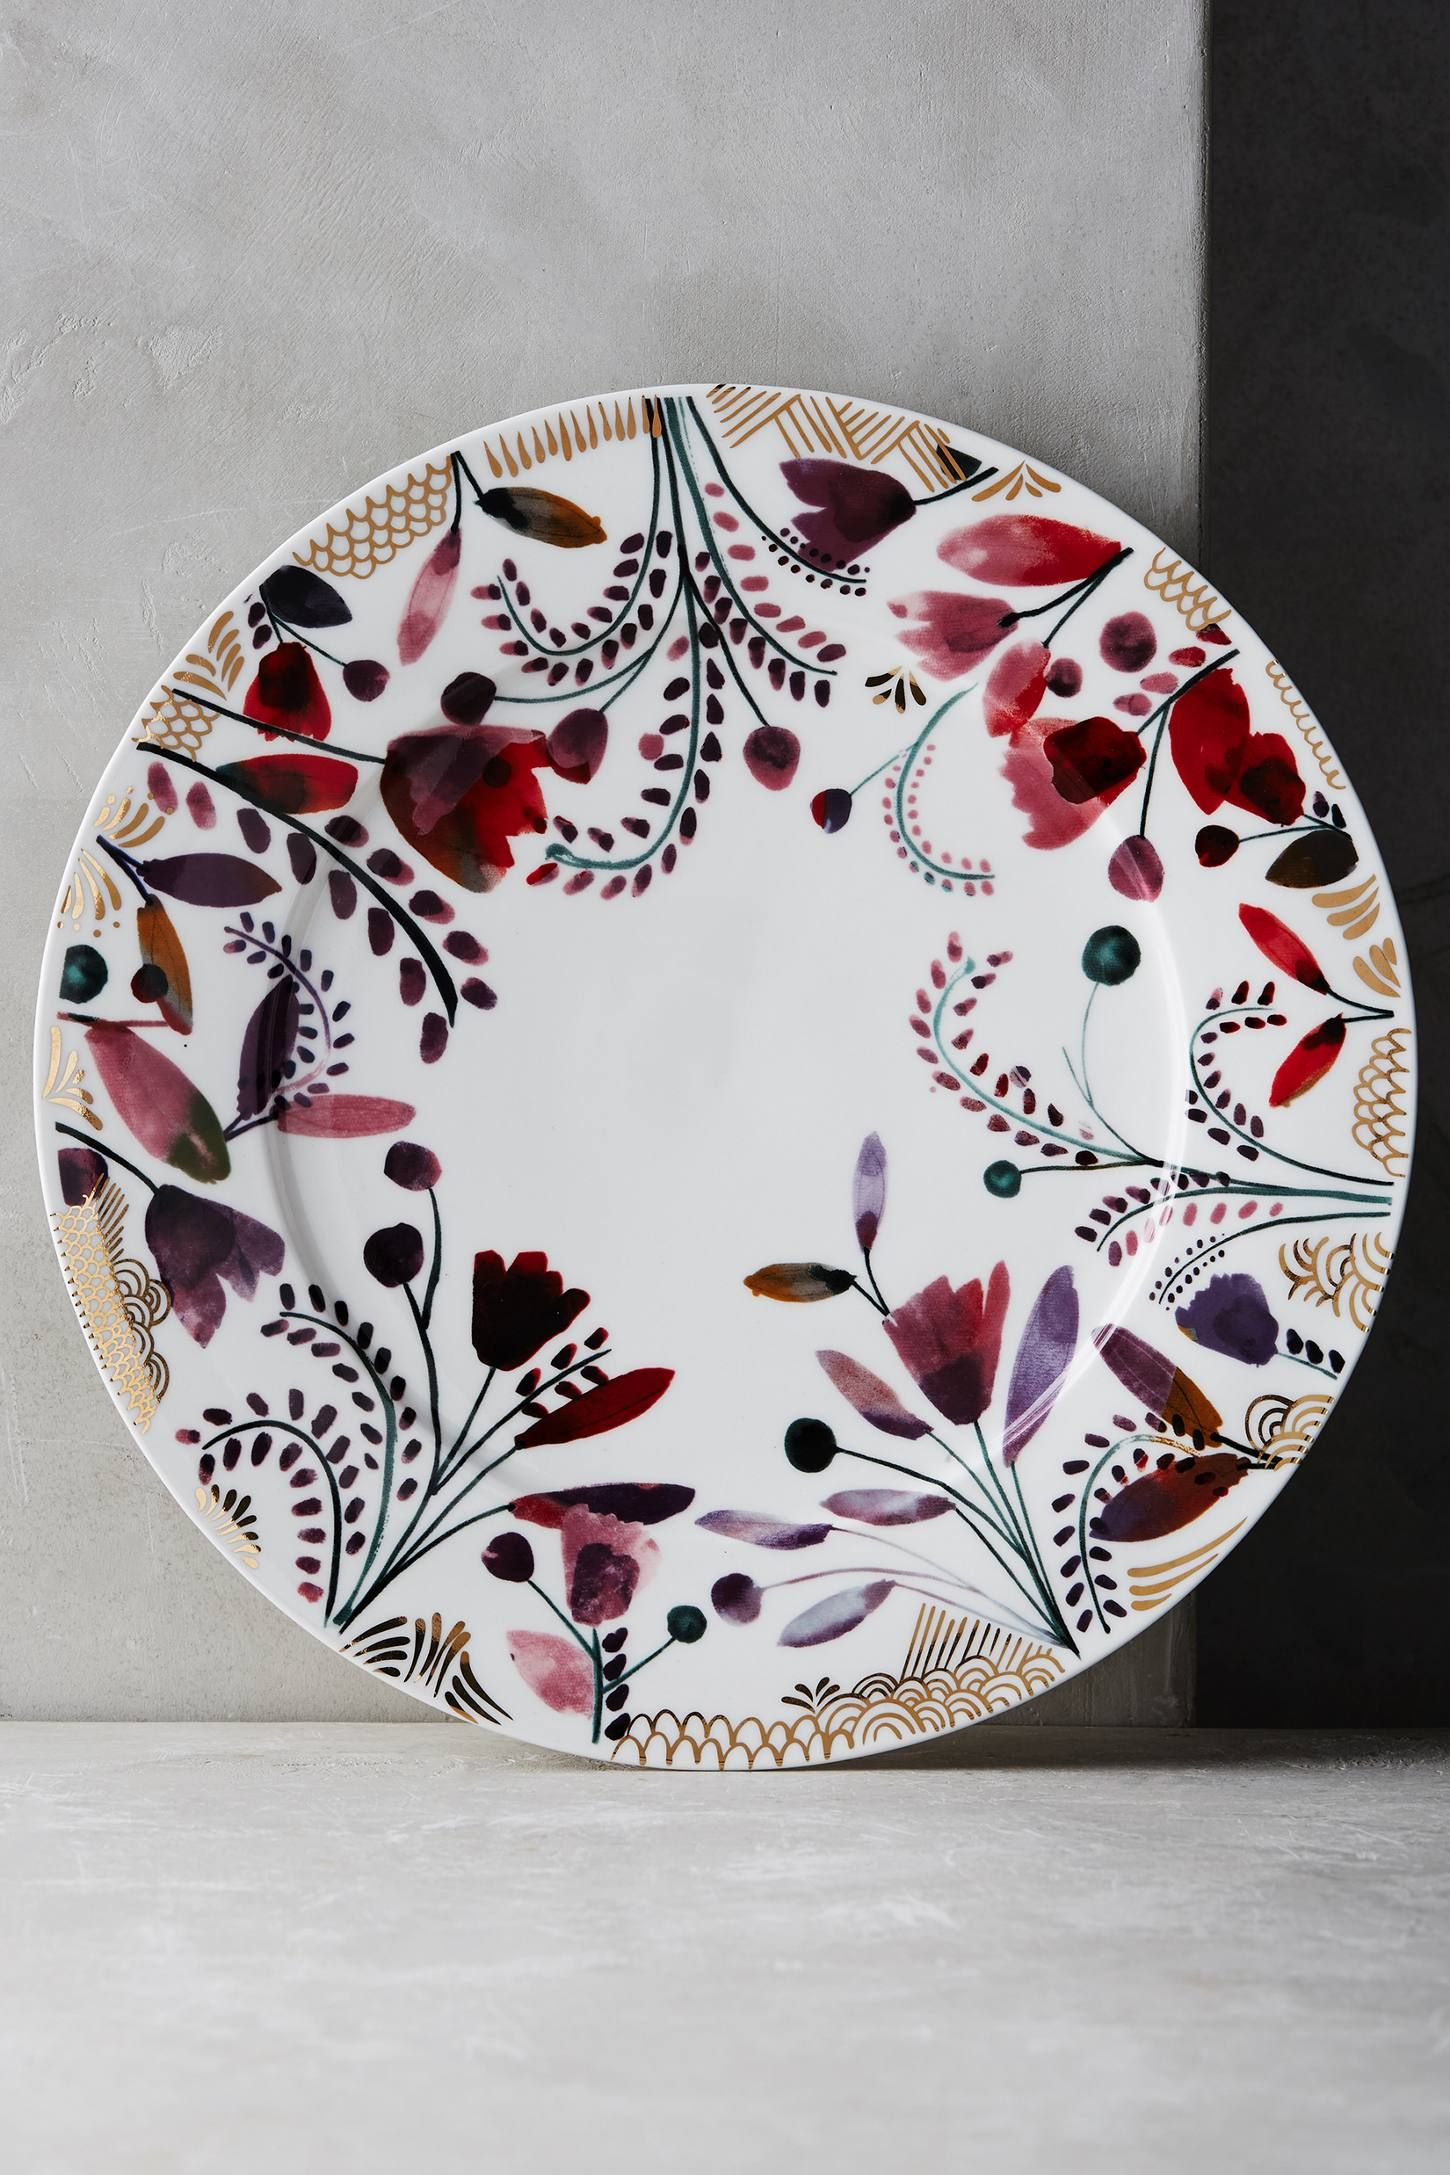 Harvest Foliage Dinner Plate Pottery Painting Designs Ceramic Cafe Pottery